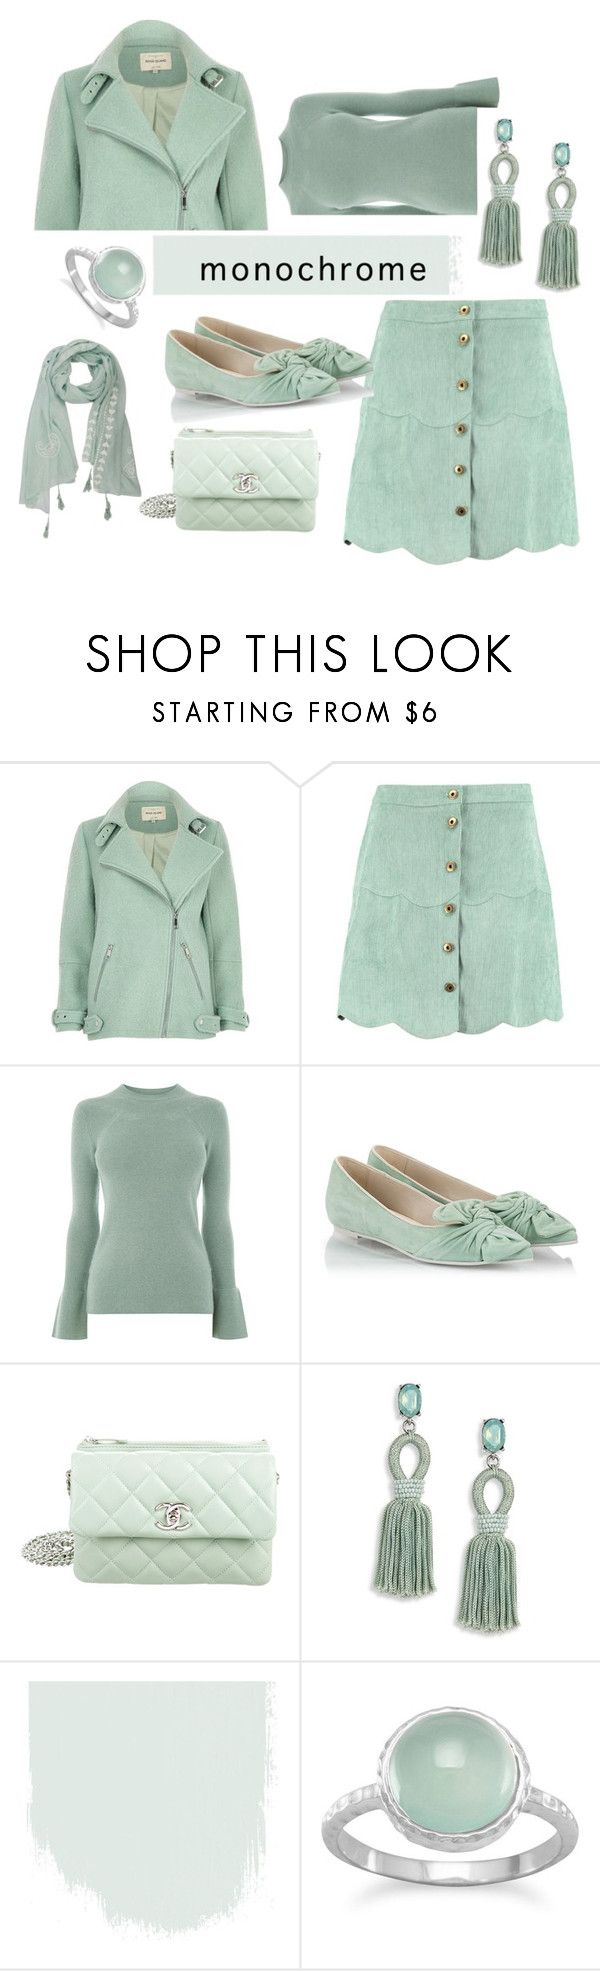 """""""minty monochrome"""" by rpsounos ❤ liked on Polyvore featuring River Island, Boohoo, Warehouse, RAS, Chanel and Oscar de la Renta"""